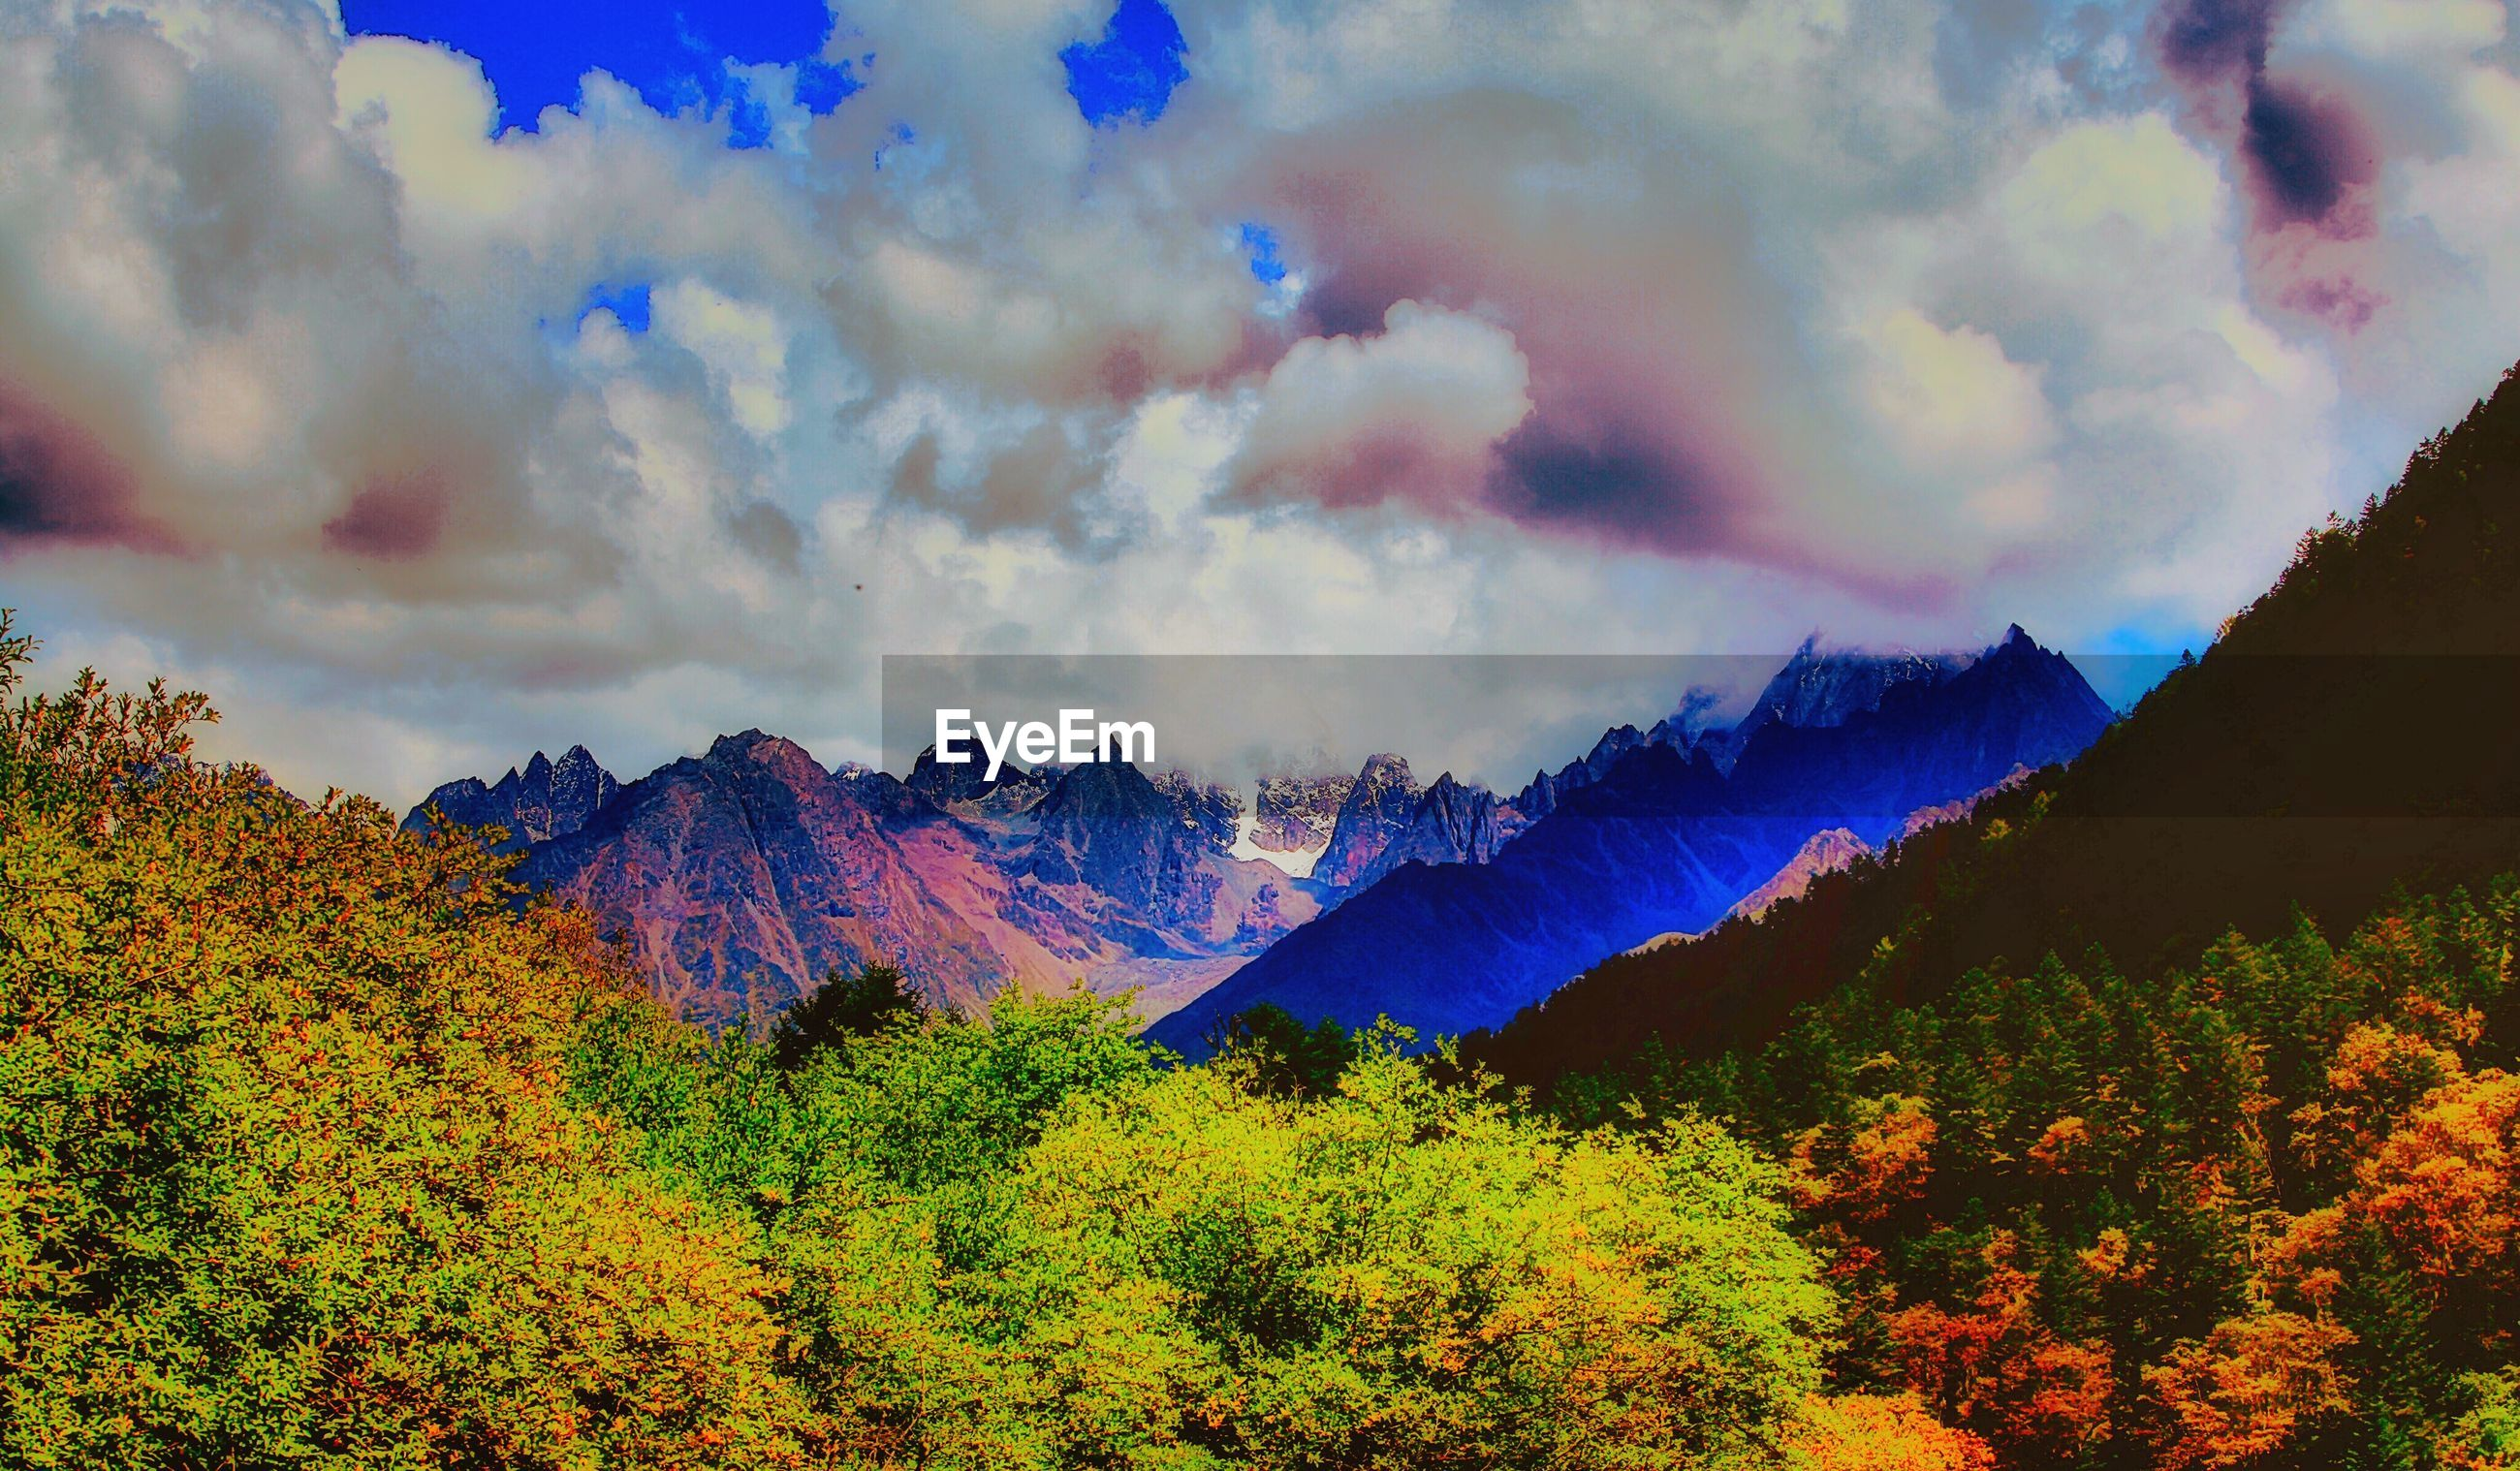 mountain, beauty in nature, scenics, tranquil scene, sky, tranquility, landscape, nature, cloud - sky, tree, growth, mountain range, idyllic, cloud, non-urban scene, cloudy, plant, no people, lush foliage, majestic